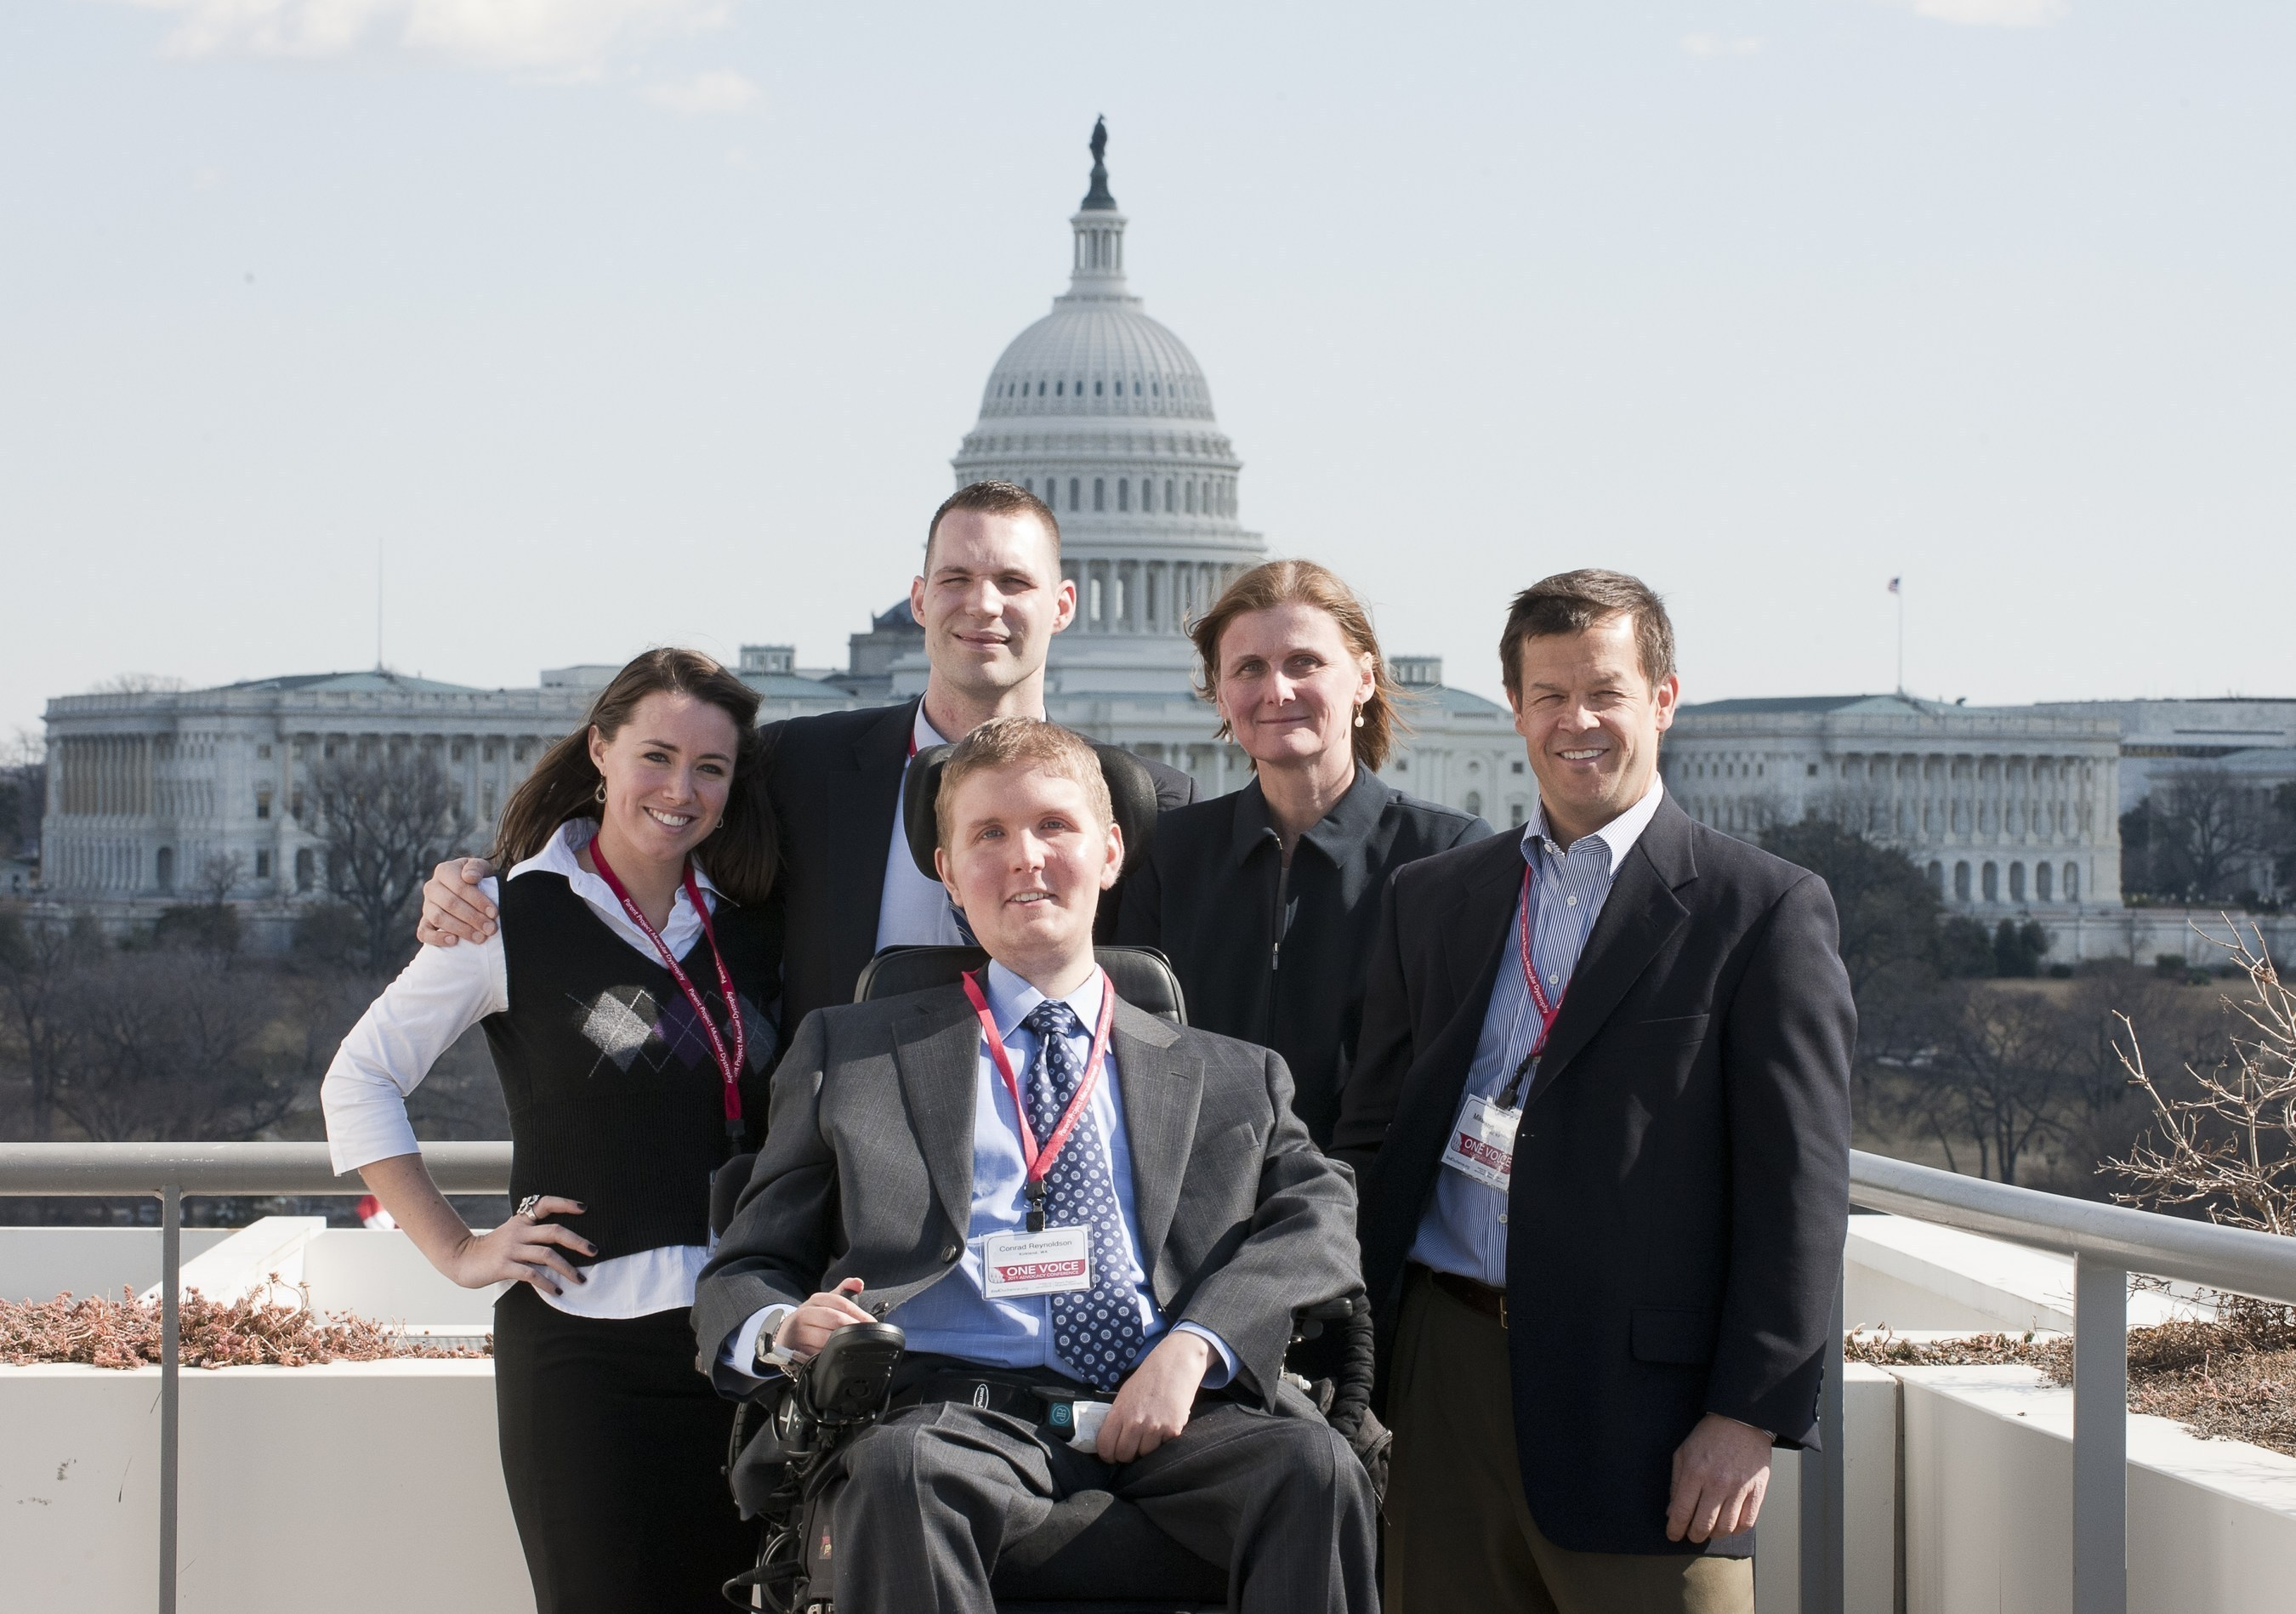 Parent Project Muscular Dystrophy leads Duchenne advocates to Capitol Hill to accelerate therapies and quality care; PPMD's Annual Advocacy Conference focused on implementing MD-CARE Act Amendments and strengthening patient voice at FDA